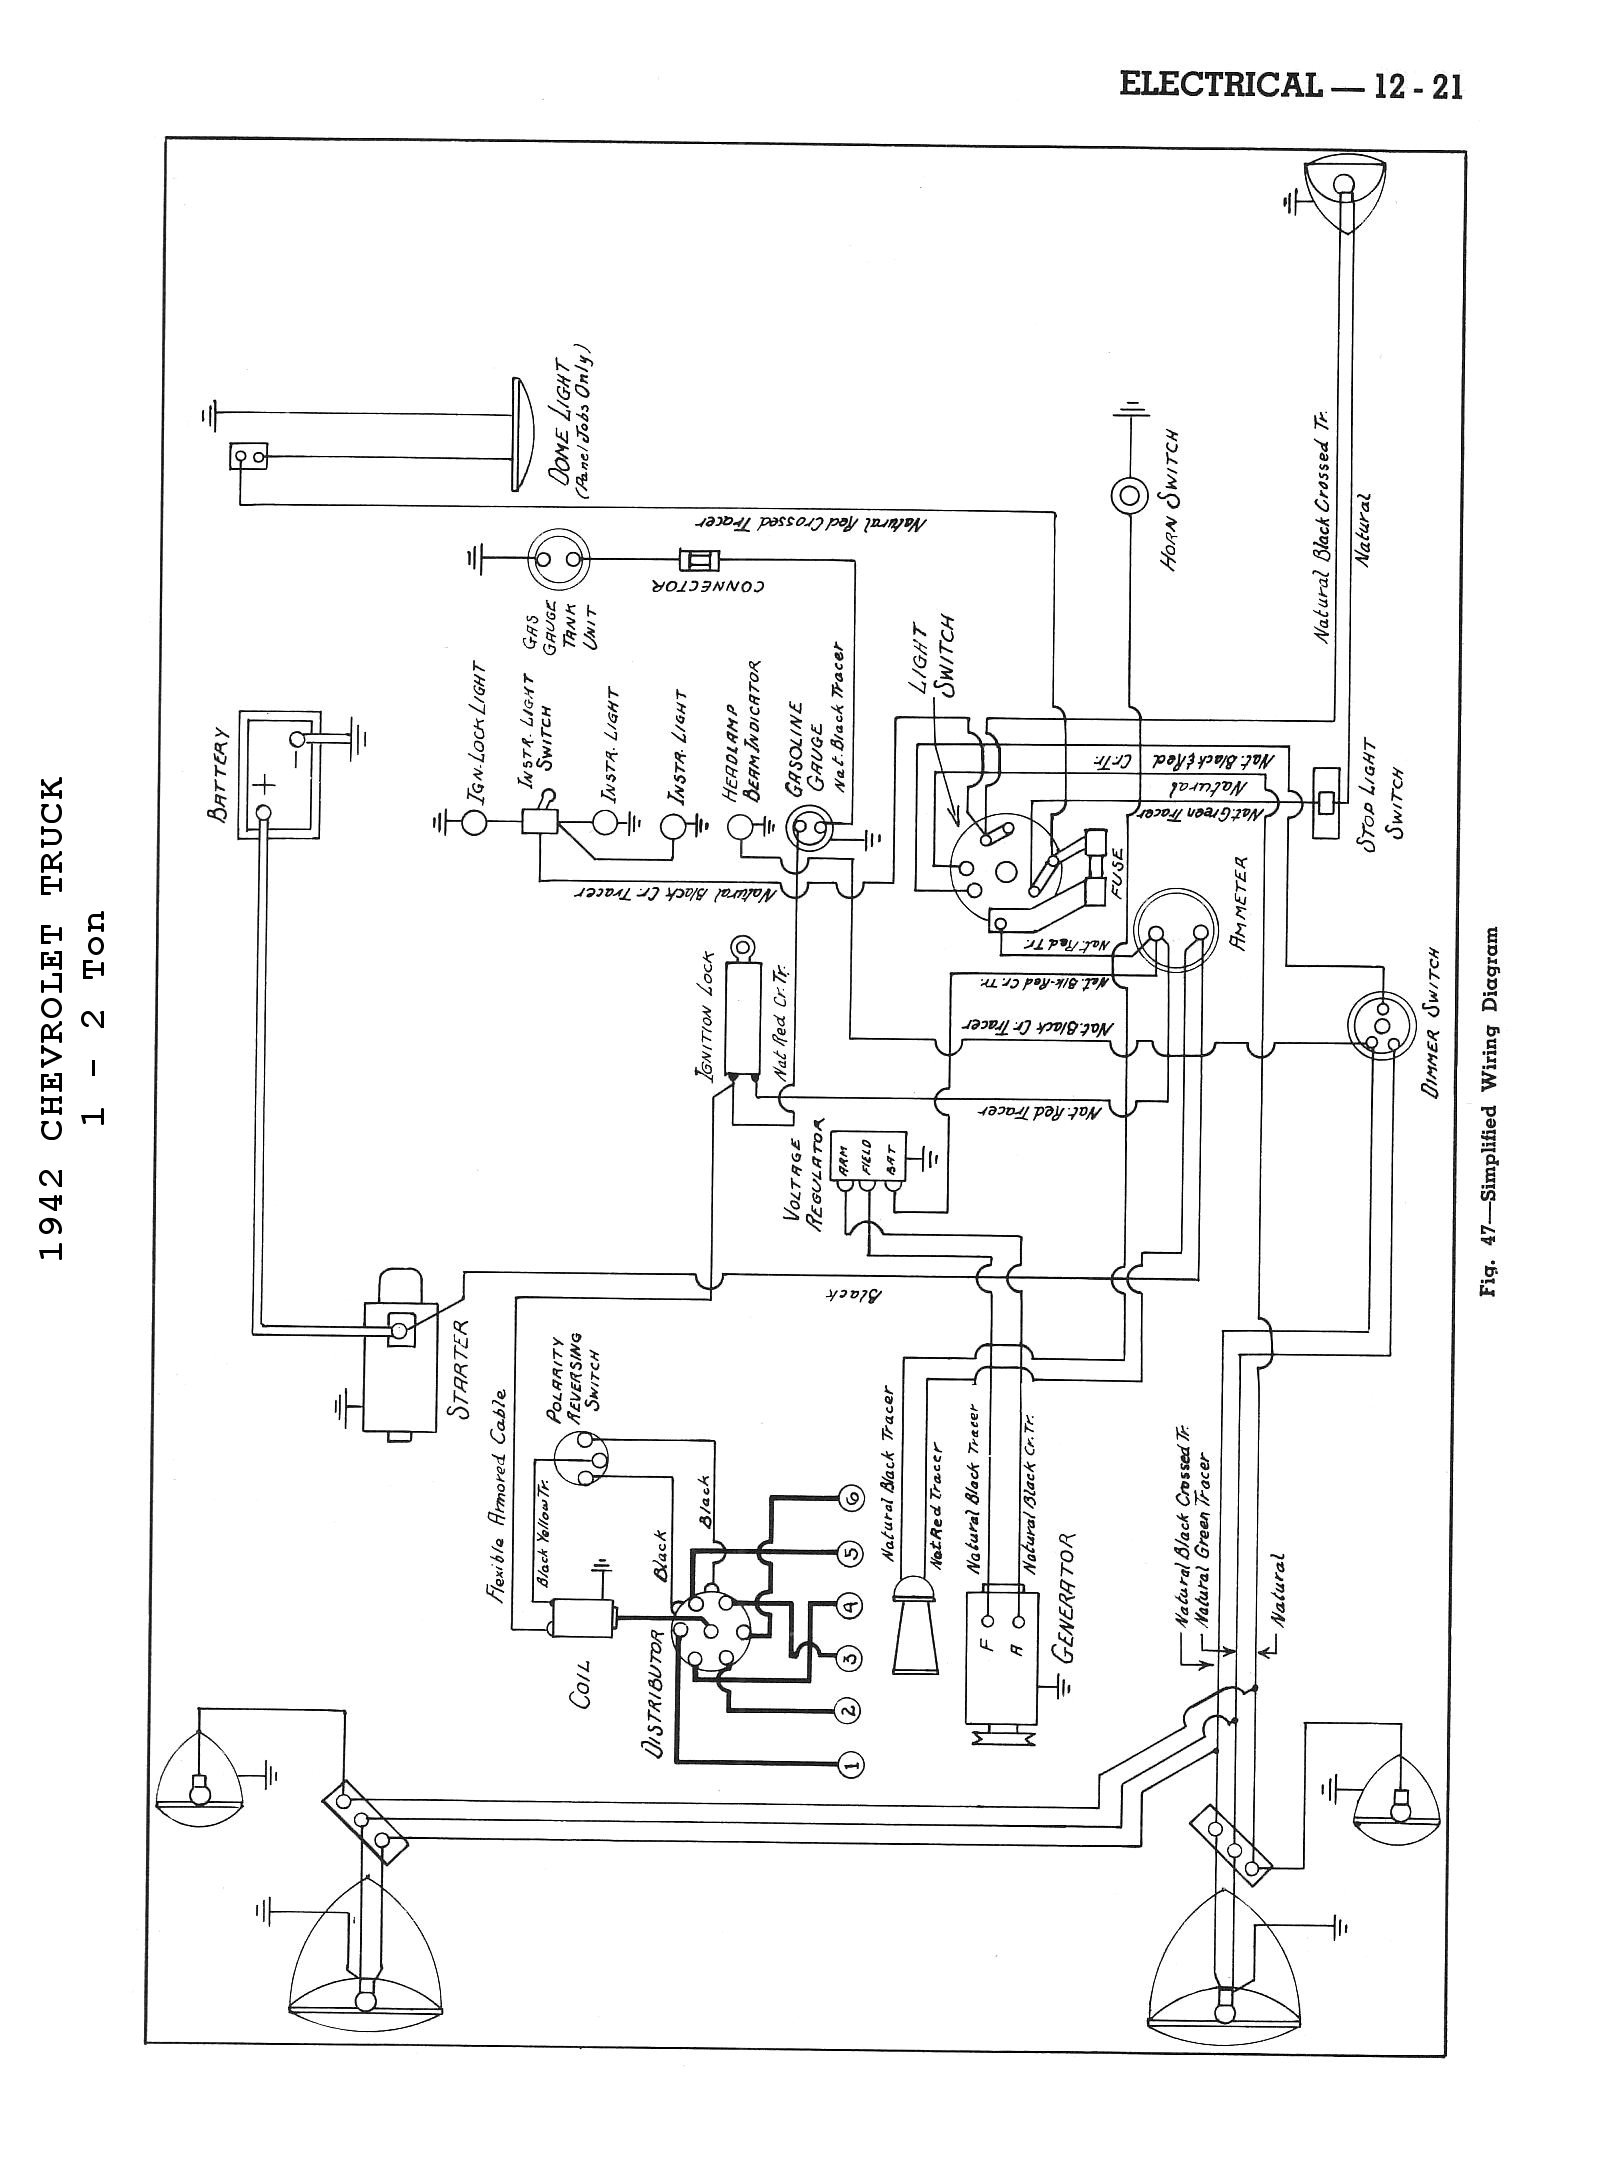 42cm4x2t1221 cm wiring diagram cm hoist wiring diagram \u2022 wiring diagrams j  at eliteediting.co